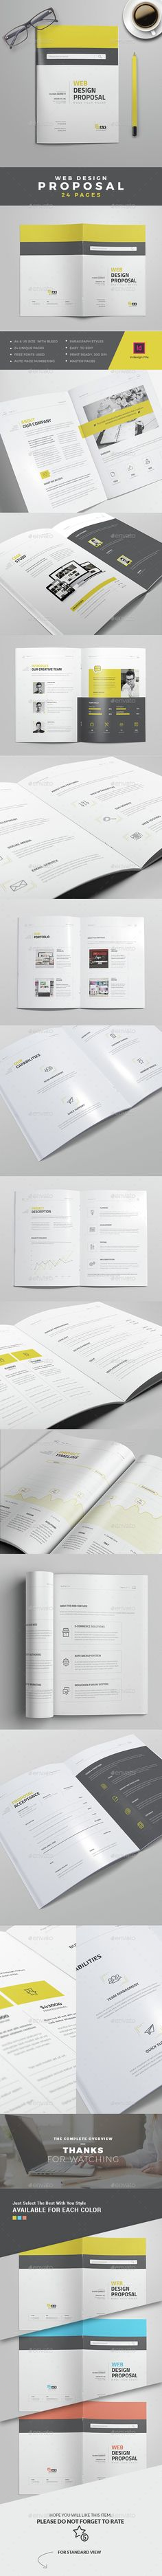 Web Design Proposal Template InDesign INDD. Download here: http://graphicriver.net/item/web-design-proposal/14929735?ref=ksioks